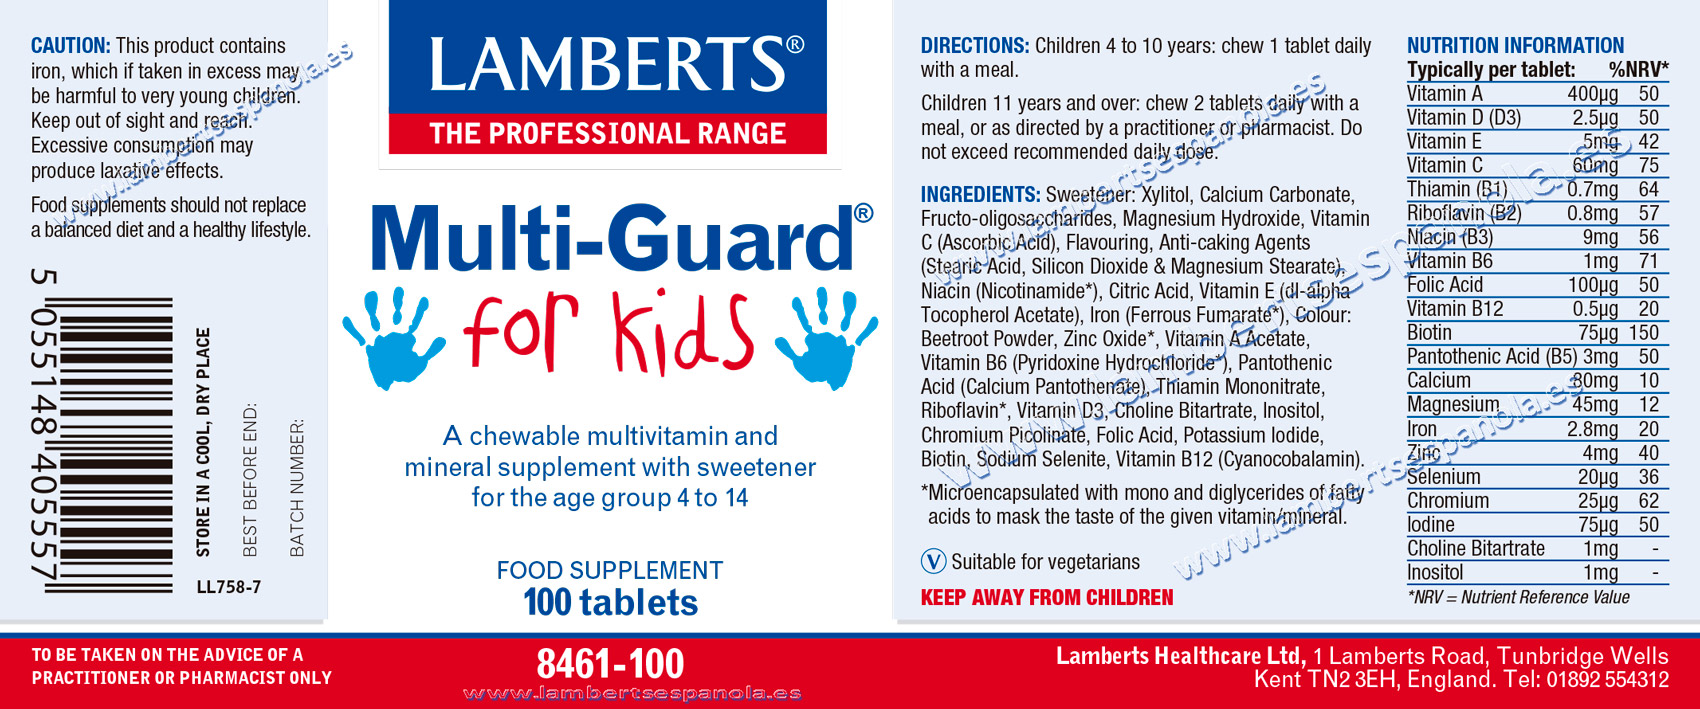 MultiGuard for kids properties